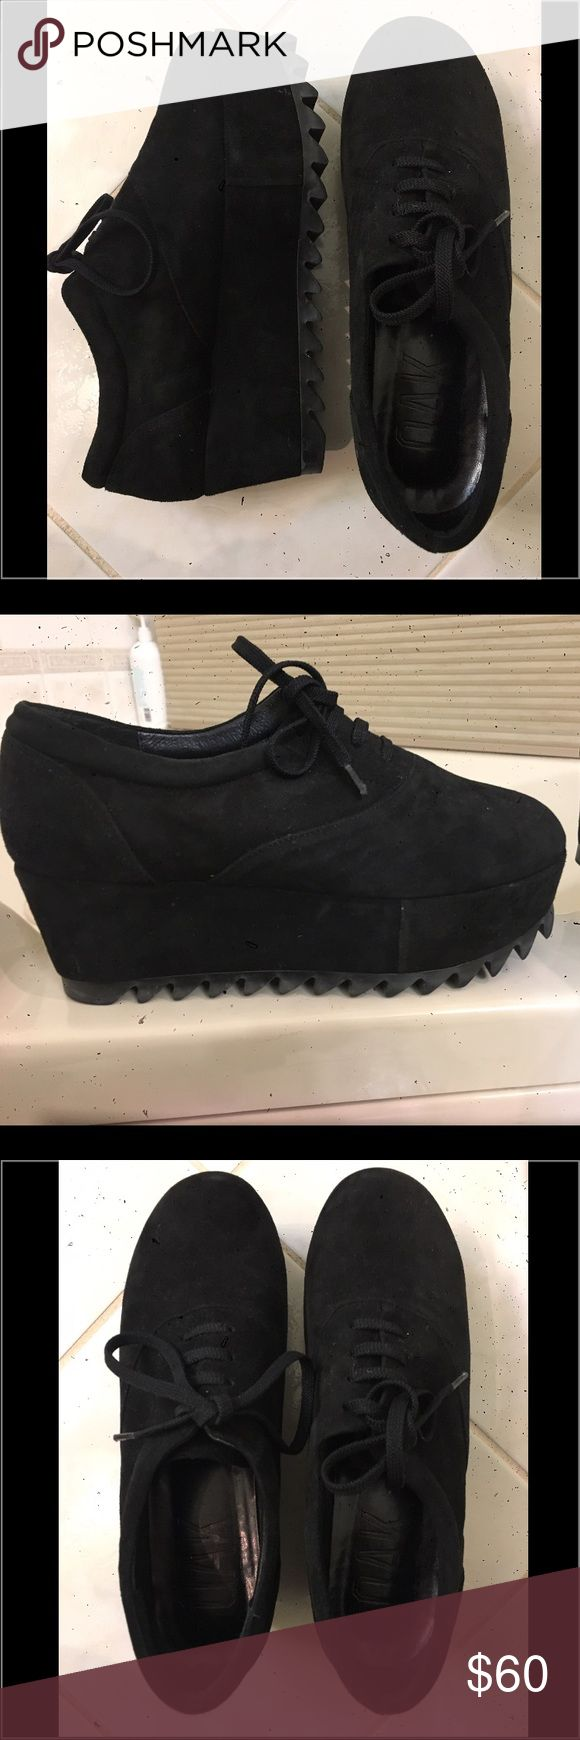 OAK NYC Black Suede Creepers US Women's 8 Dope OAK NYC black suede creepers. US Women's Size 8. They are oh, so soft! Comfy even after hours of schlepping round the city! Great Preowned Condition. No scratches/stains/discoloration on the suede. Soles are a little dirty, but I'll clean em for ya before I ship! (Side Note: ignore the black specks on my photos; those are scratches on my iPhone camera lens!) OAK NYC Shoes Platforms